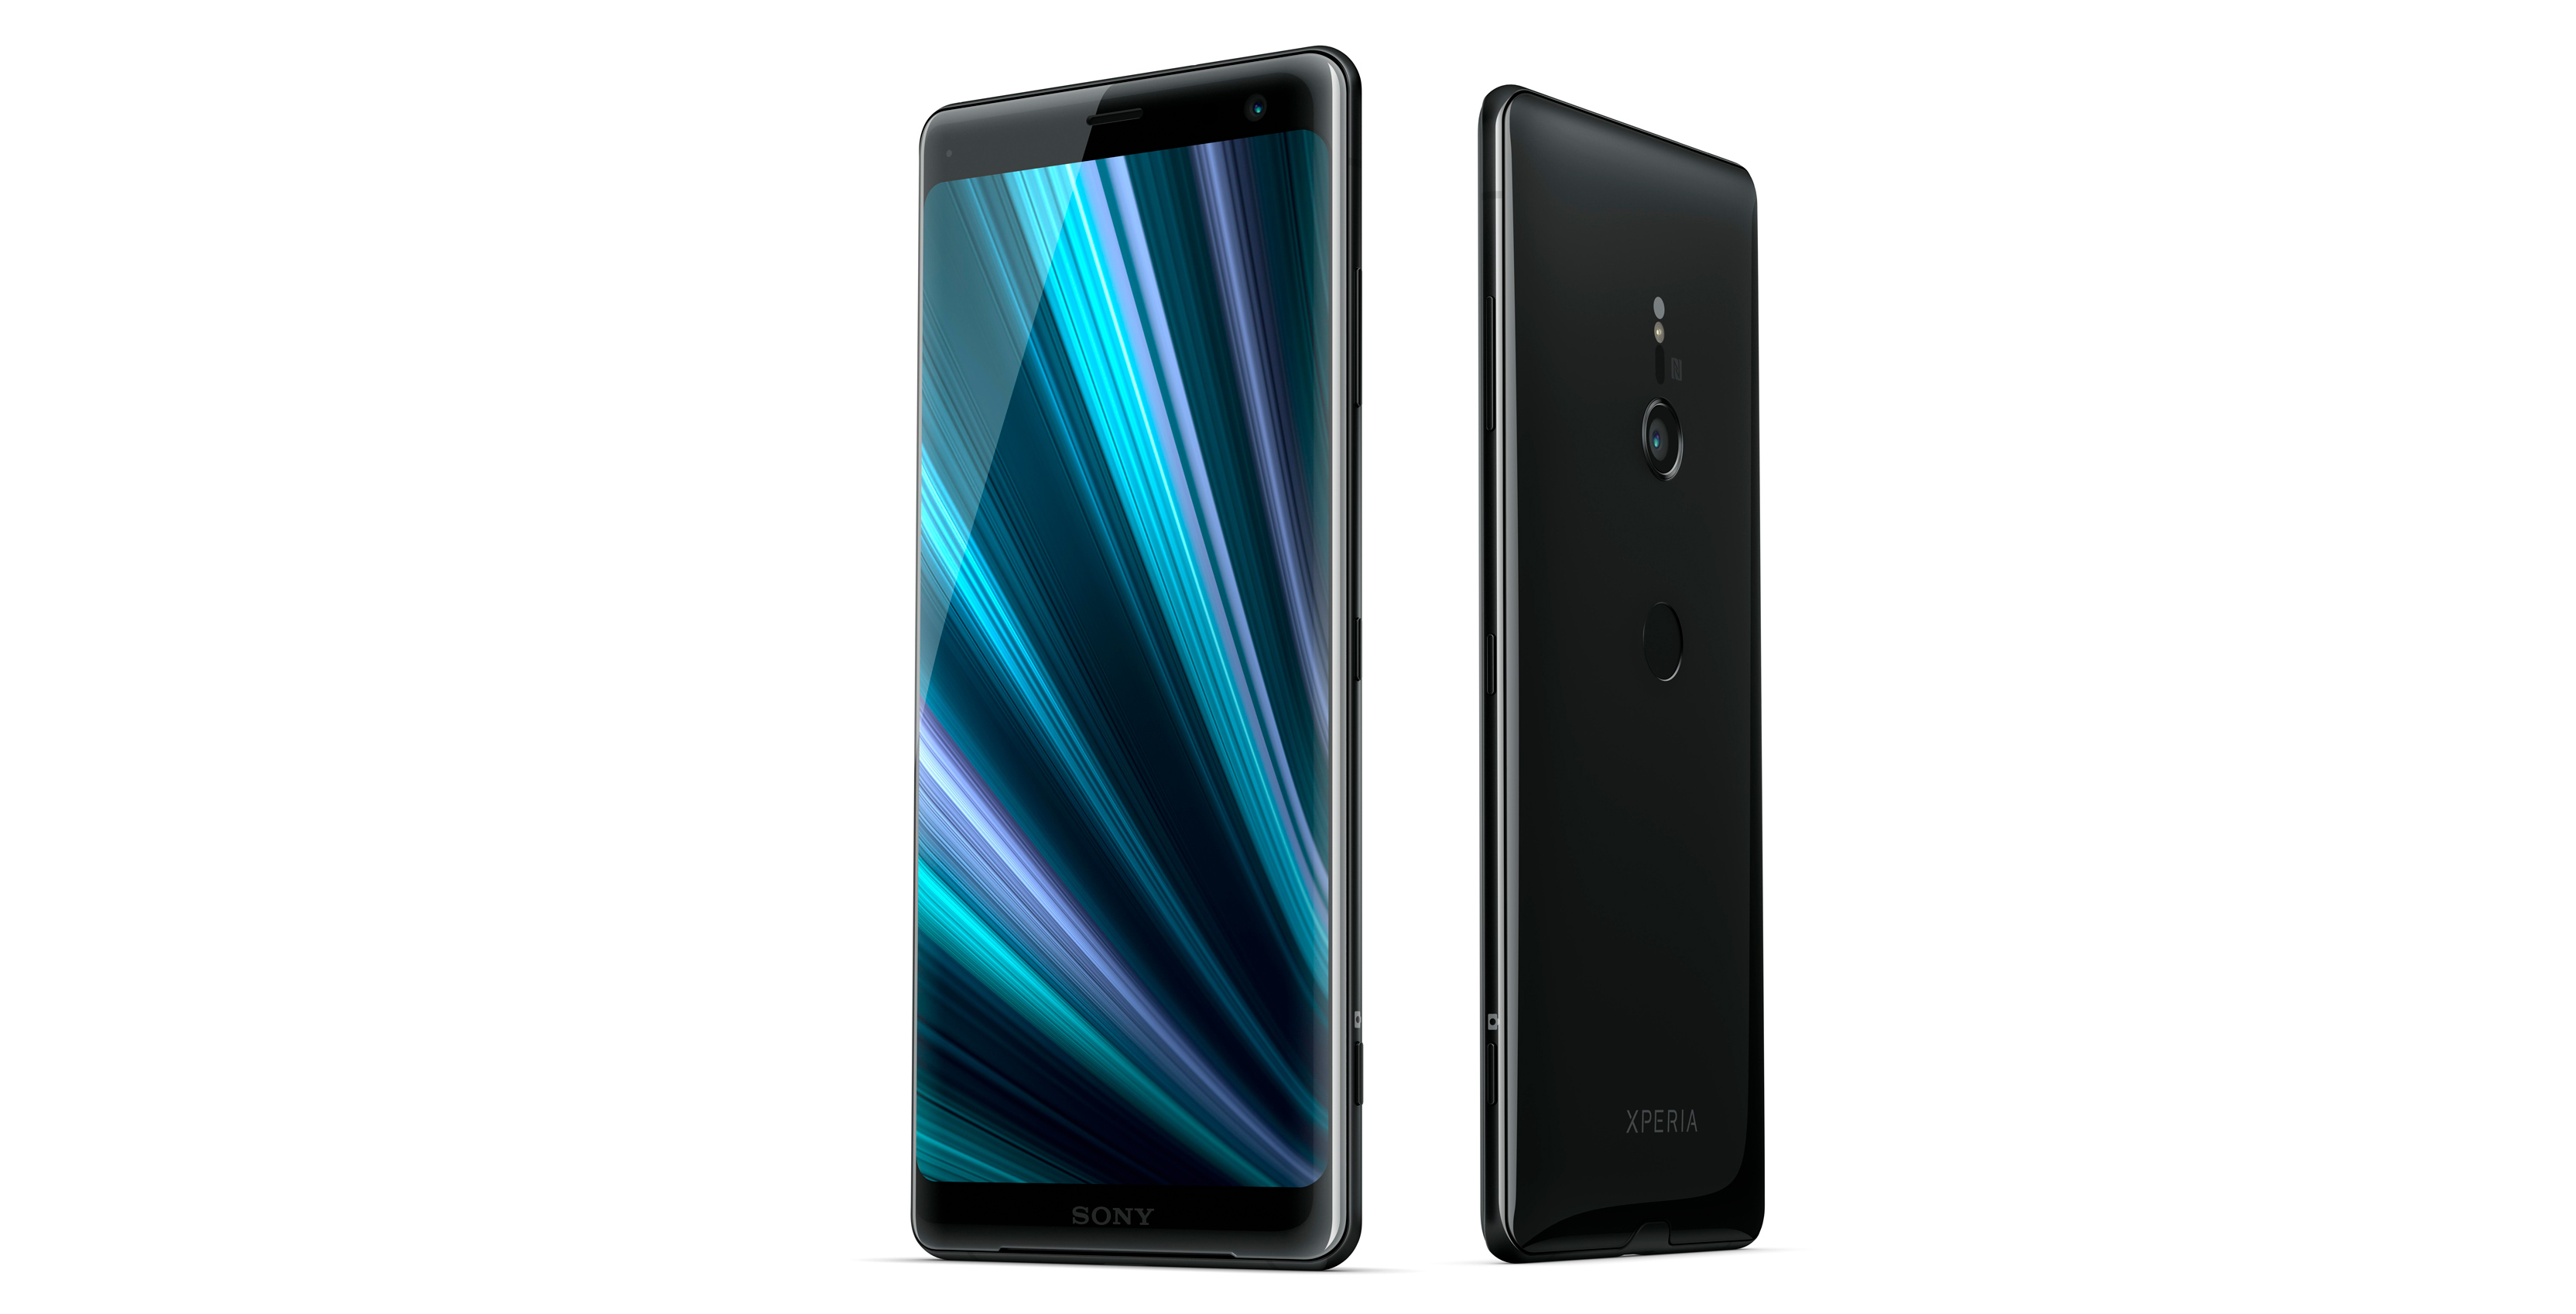 Xperia XZ3 features the slimmest bezels ever in a Sony